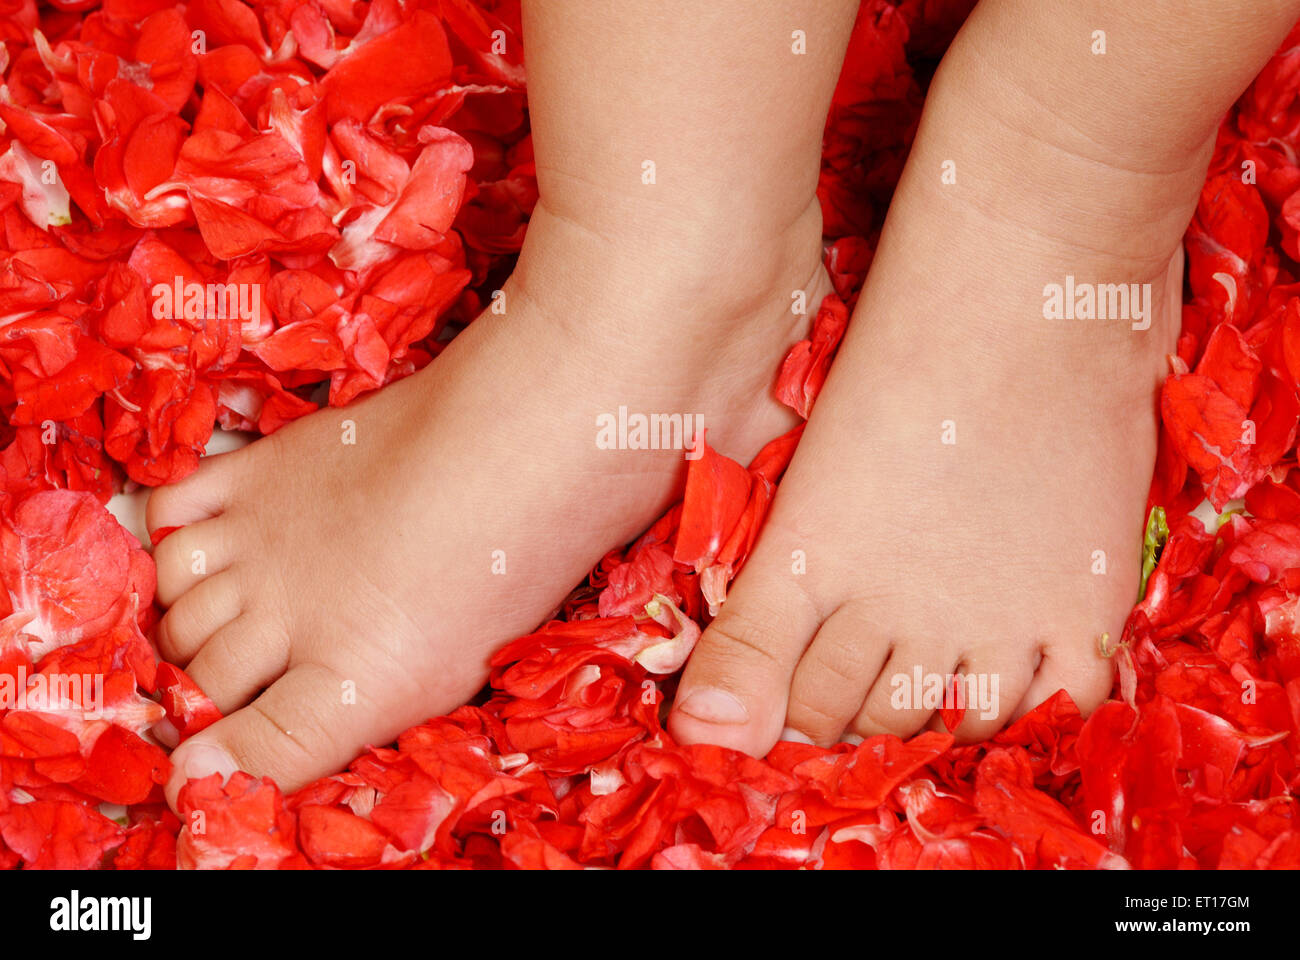 Baby feet standing on red rose flower petals MR#152 - Stock Image